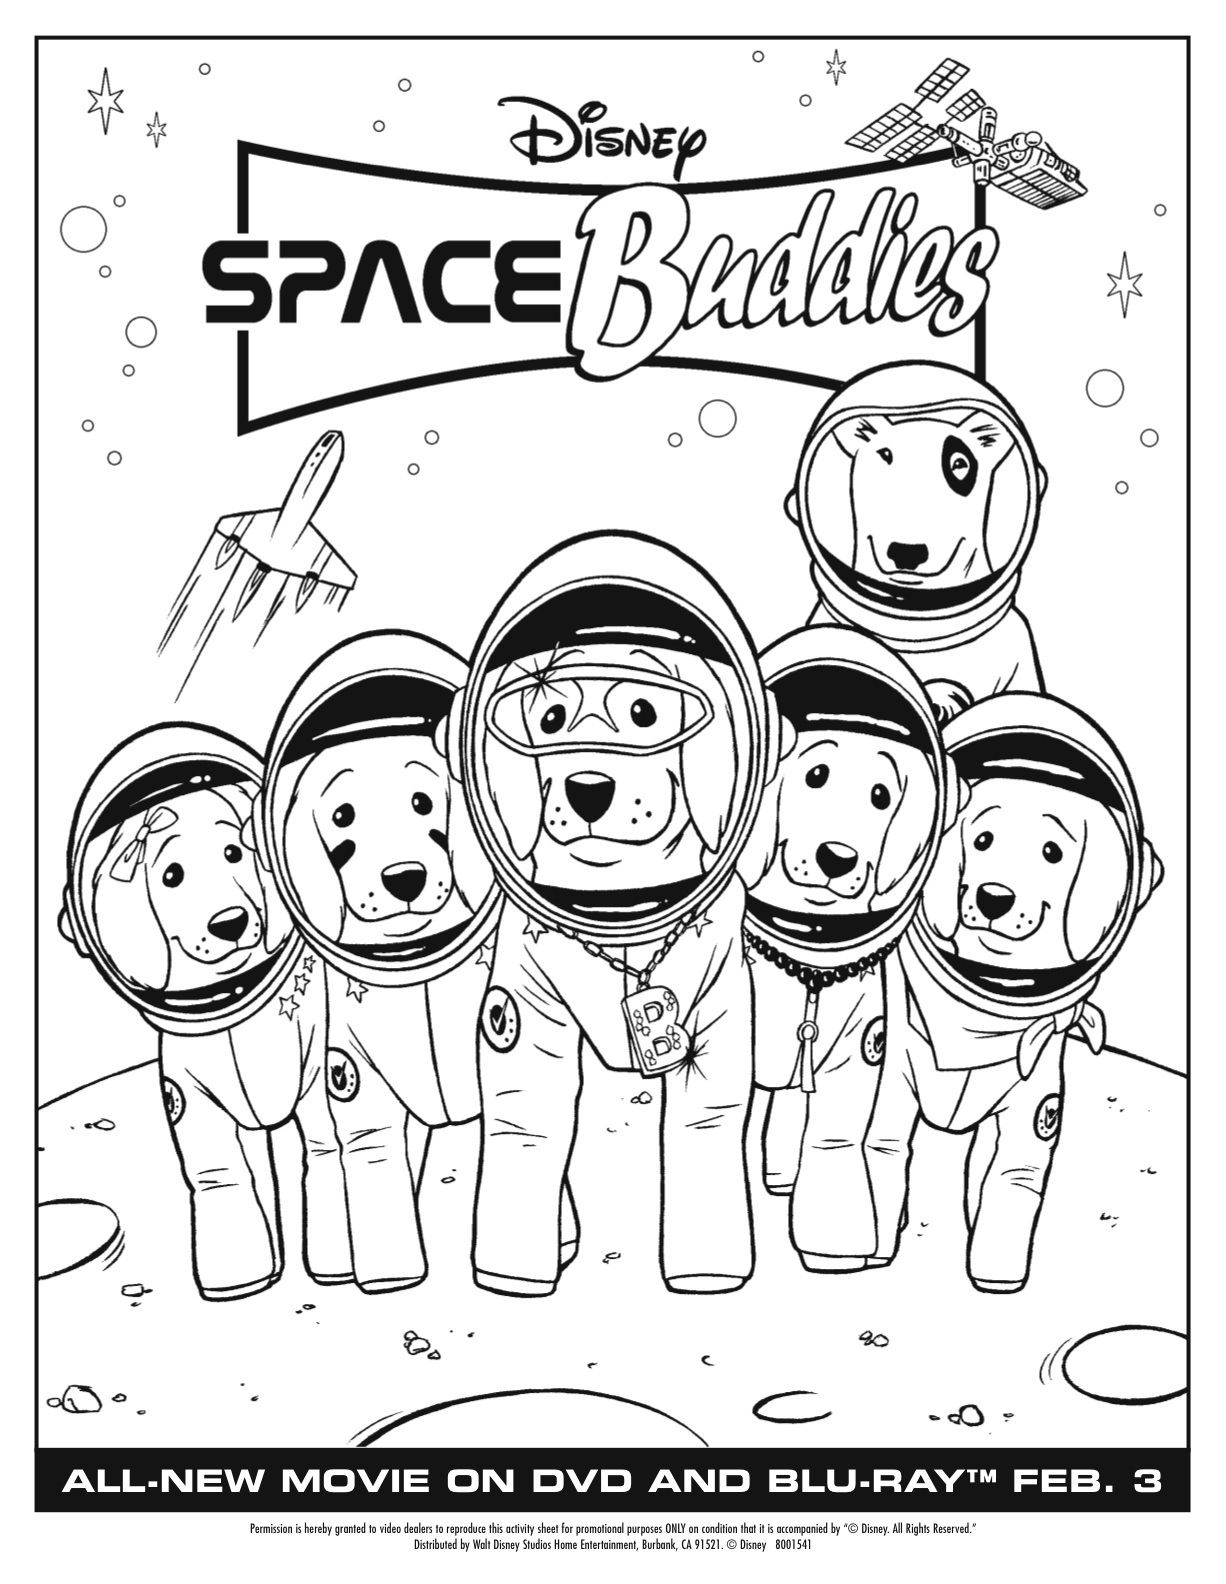 Super Buddies Coloring Pages Free Coloring Pages Coloring For Kids Buddy